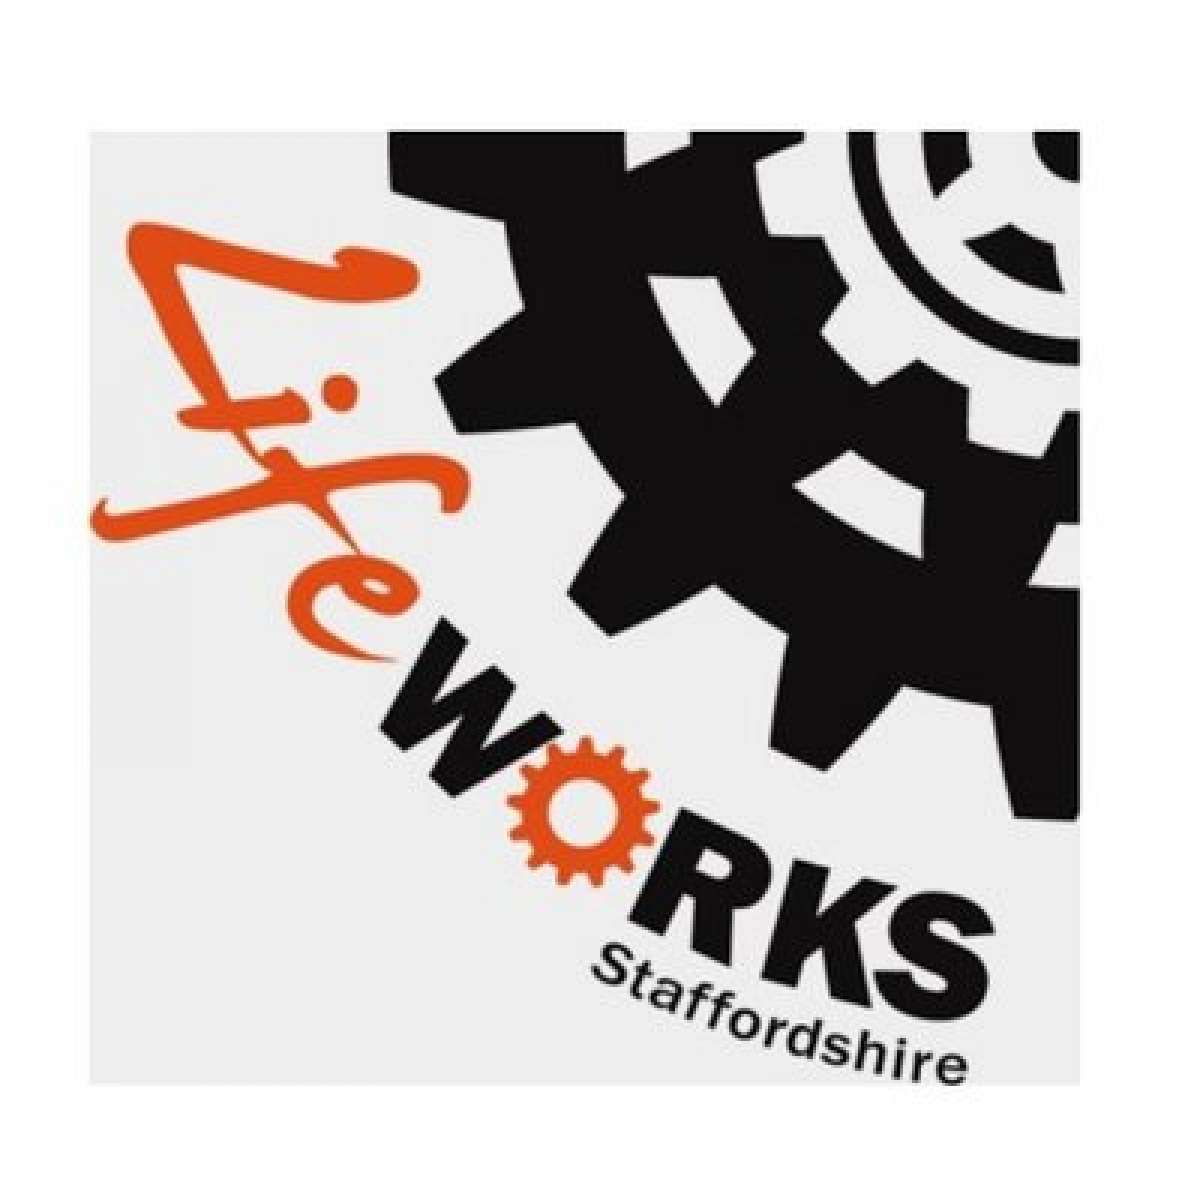 Lifeworks Staffordshire eCards